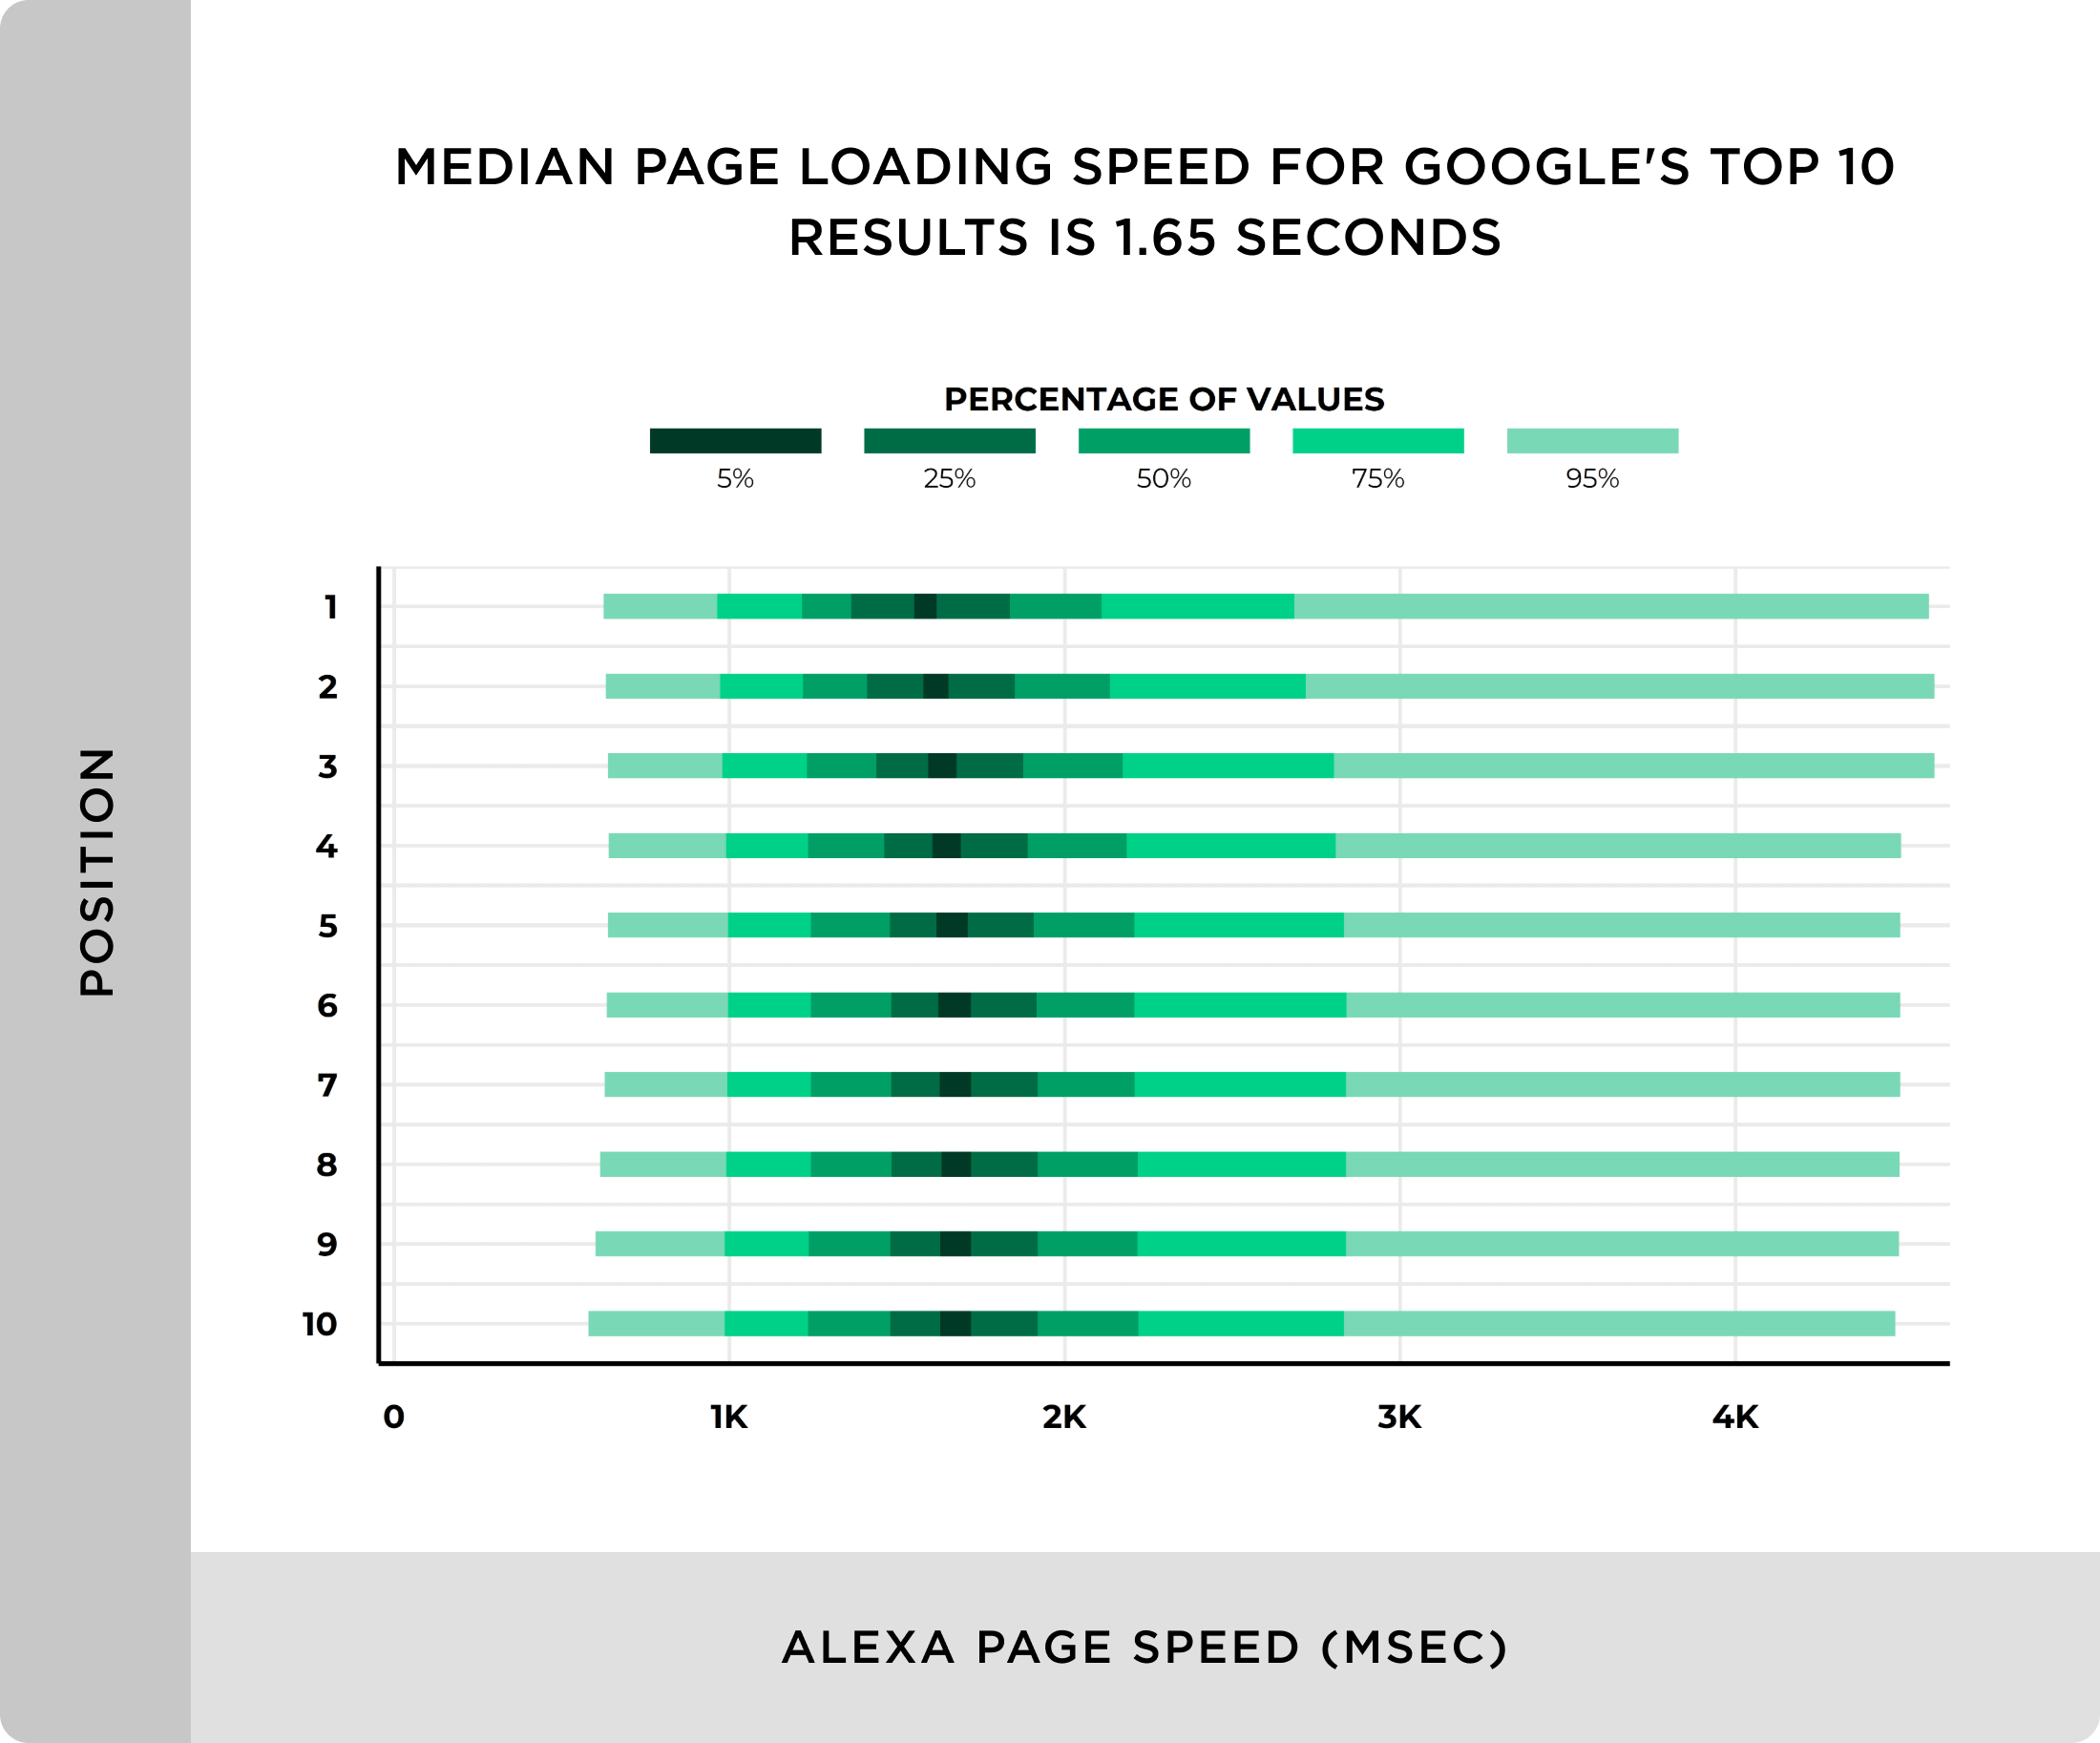 Median page loading speed for Googles top 10 results is under 2 seconds